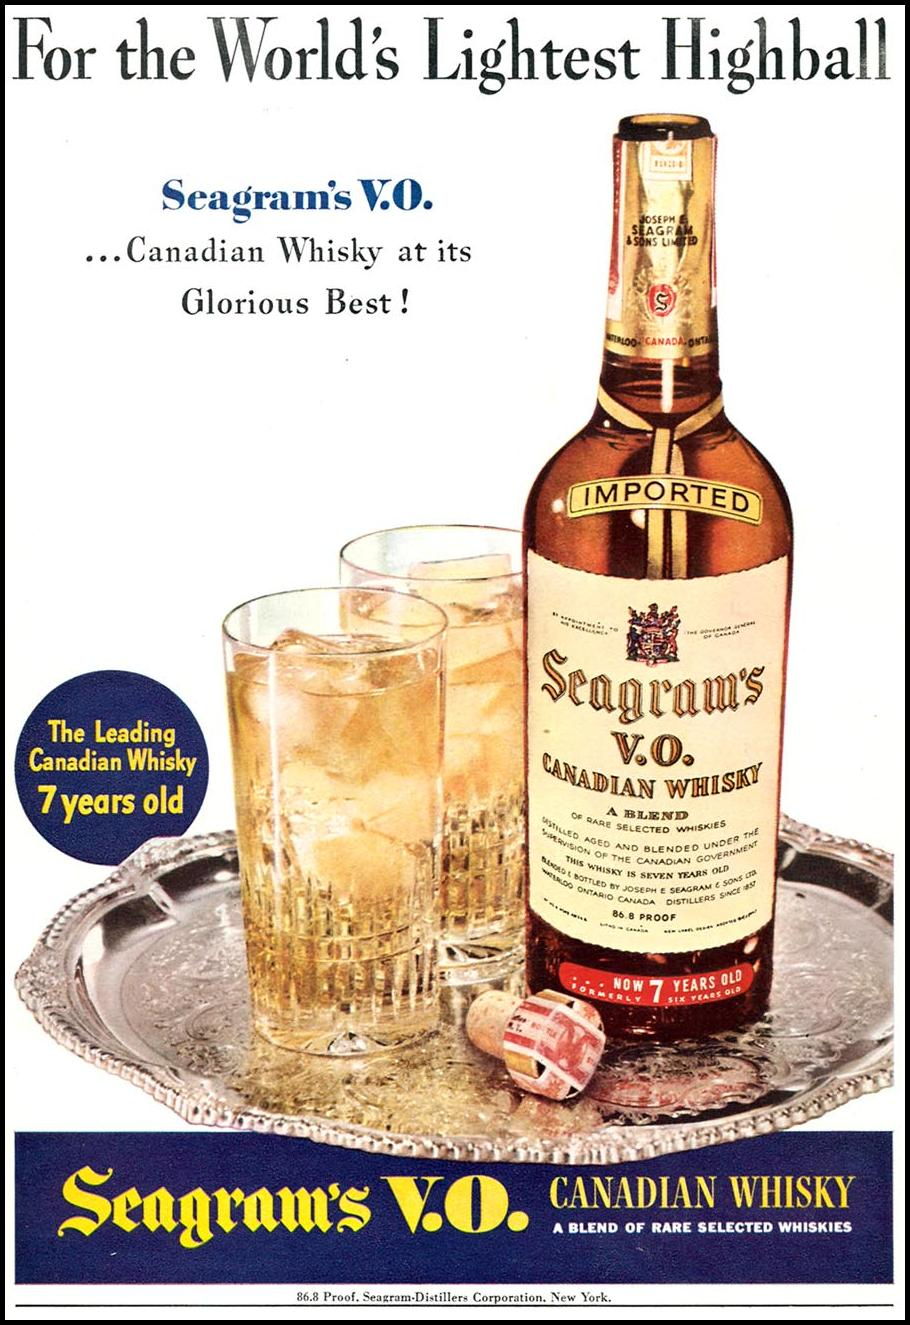 SEAGRAM'S V. O. CANADIAN WHISKY TIME 02/16/1942 p. 45